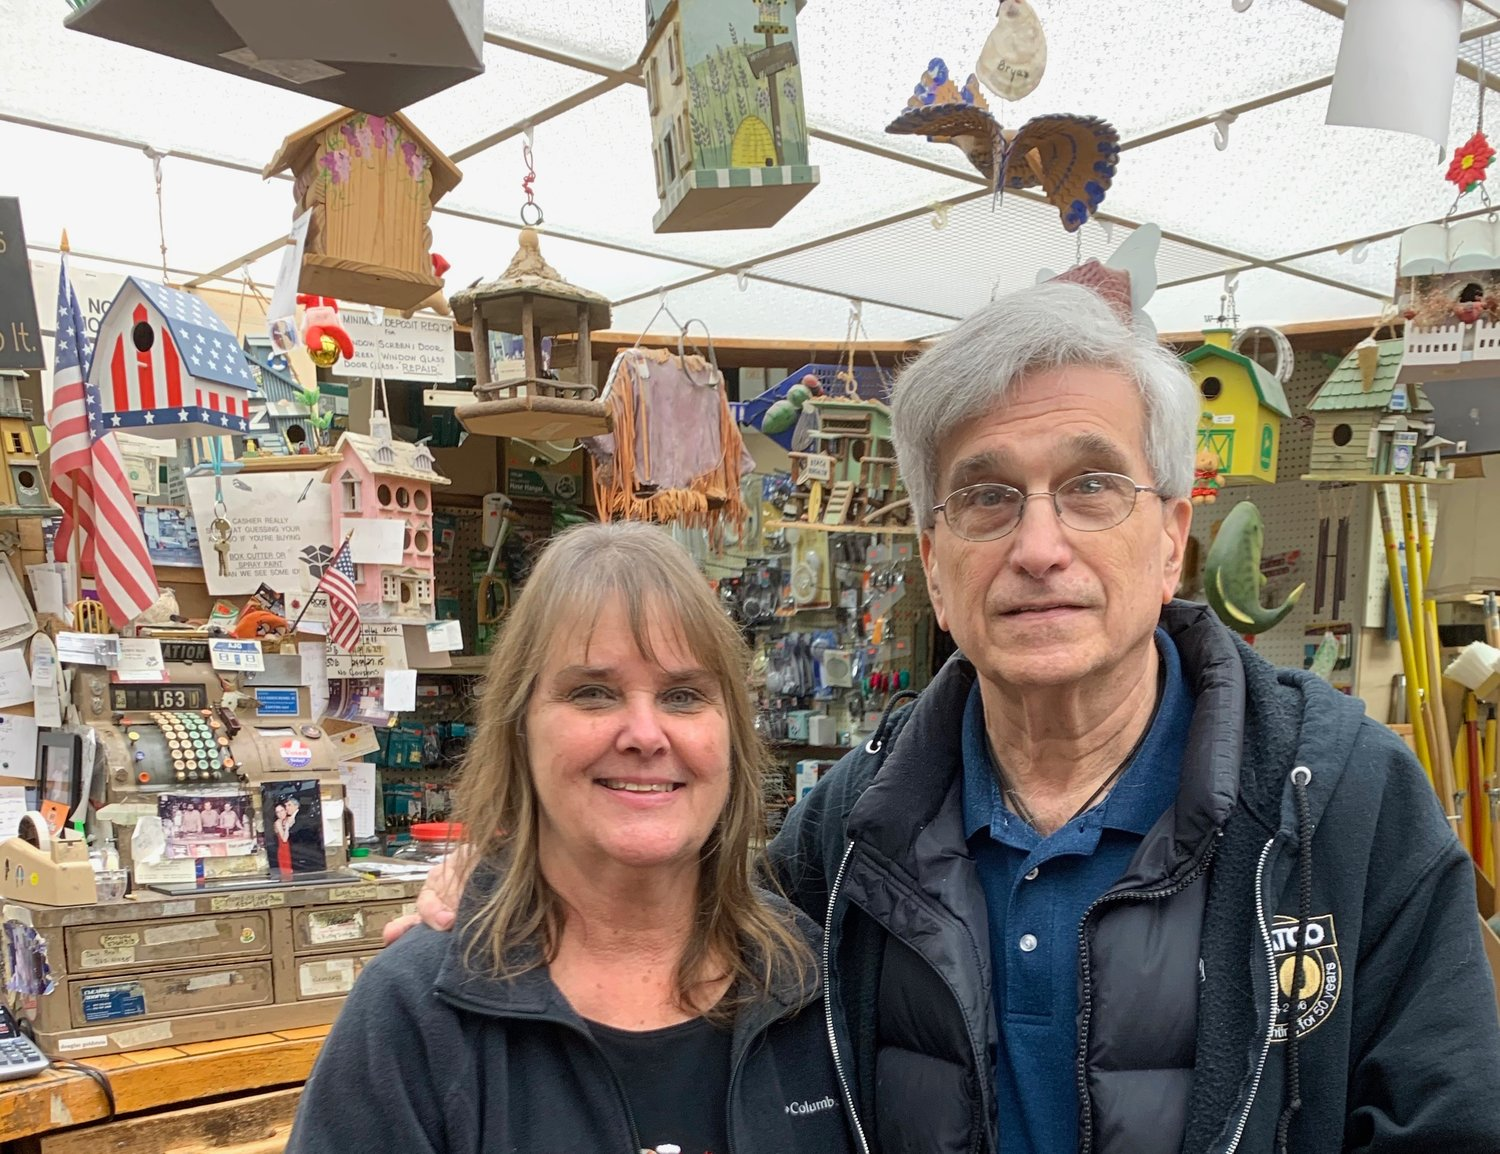 After operating Charles of Glen Cove for decades, Douglas and Sue Goldstein have decided to retire and close the popular hardware store.